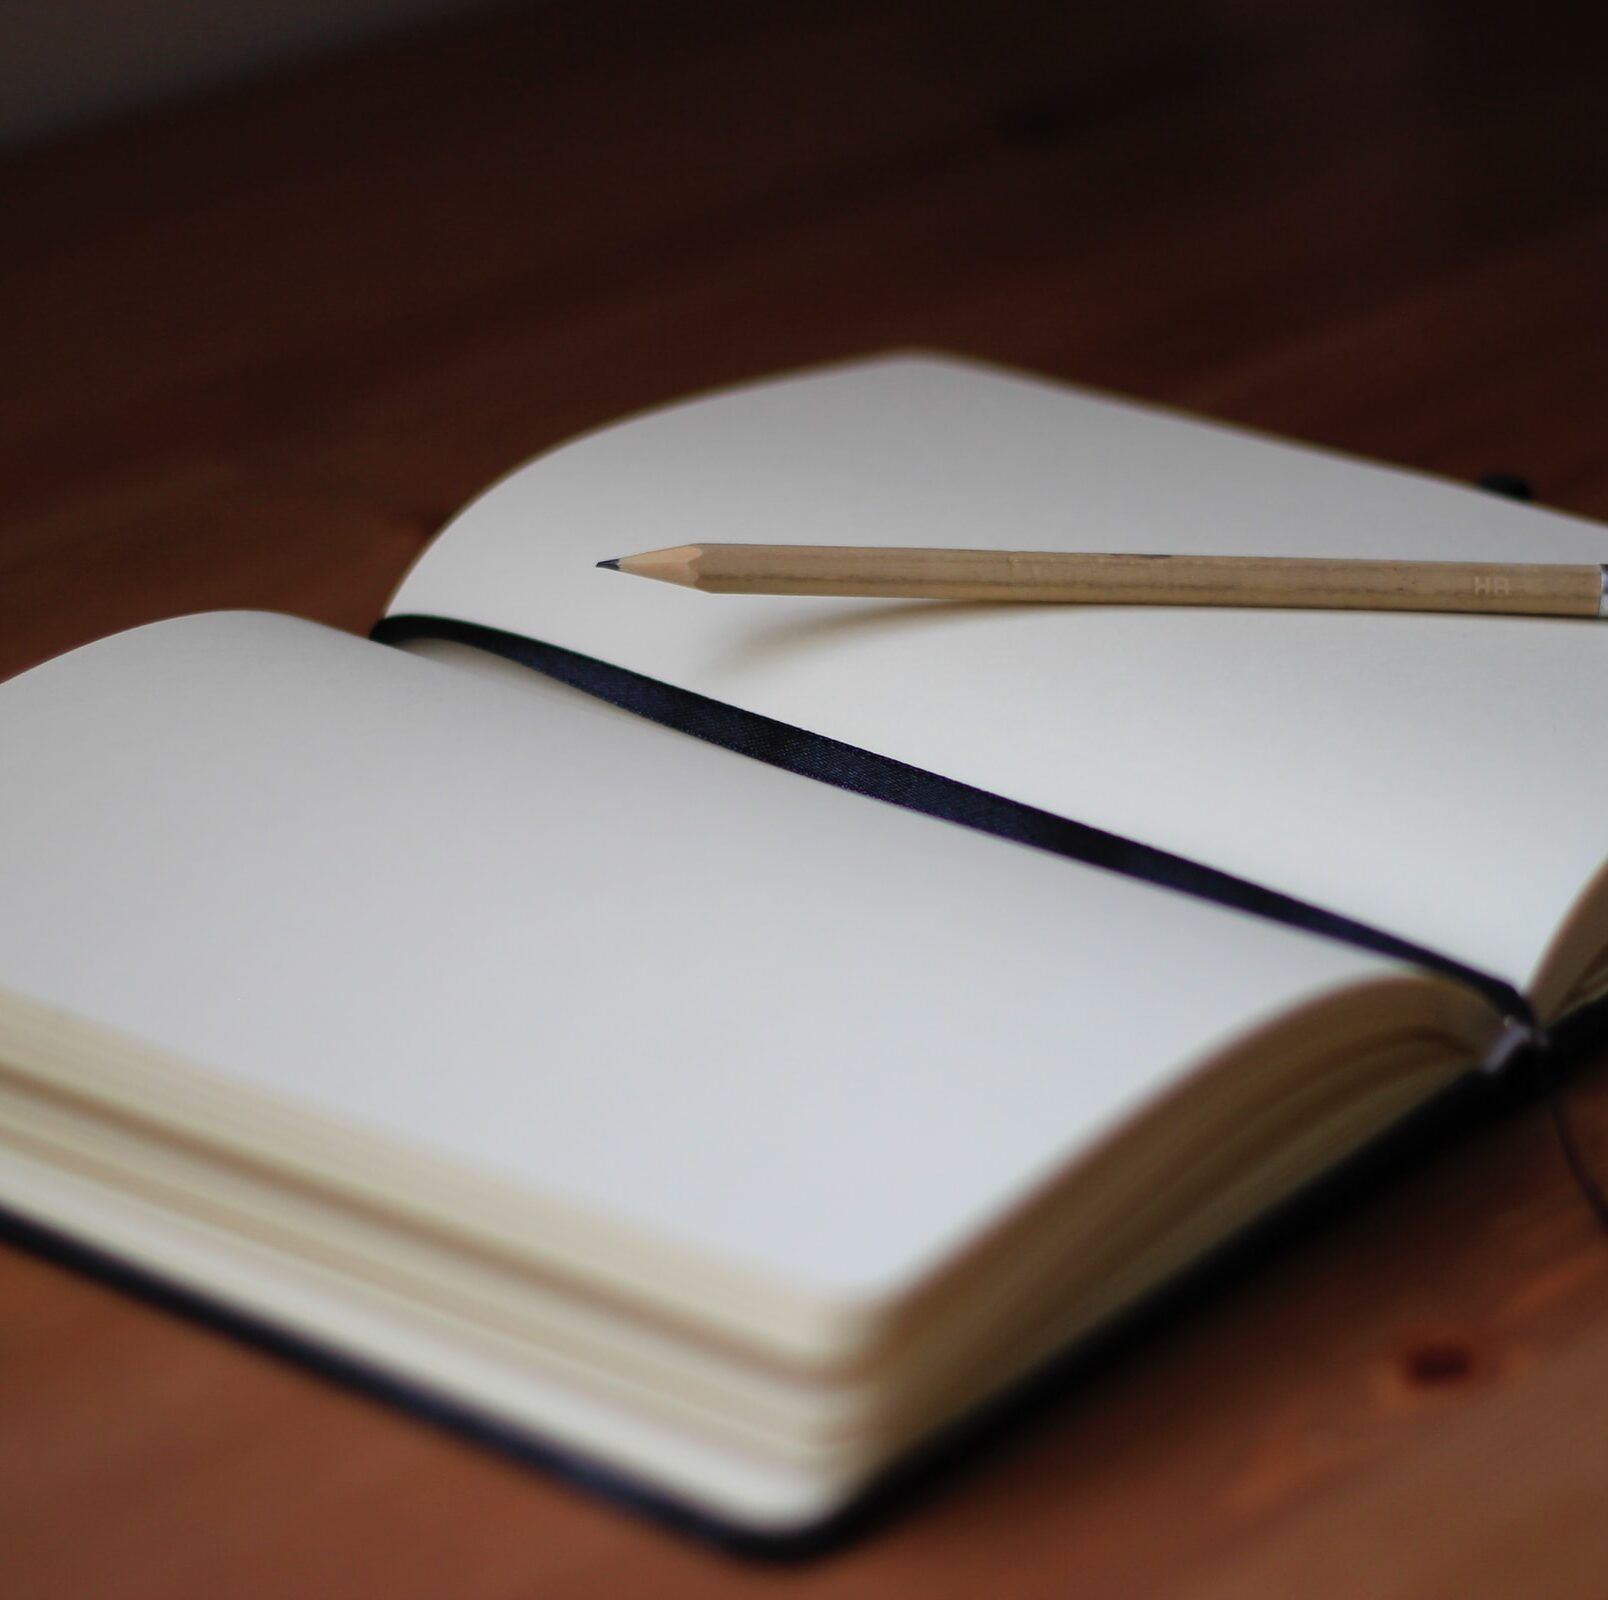 old notebooks out of context sentences Photo by jan kahanek on Unsplash